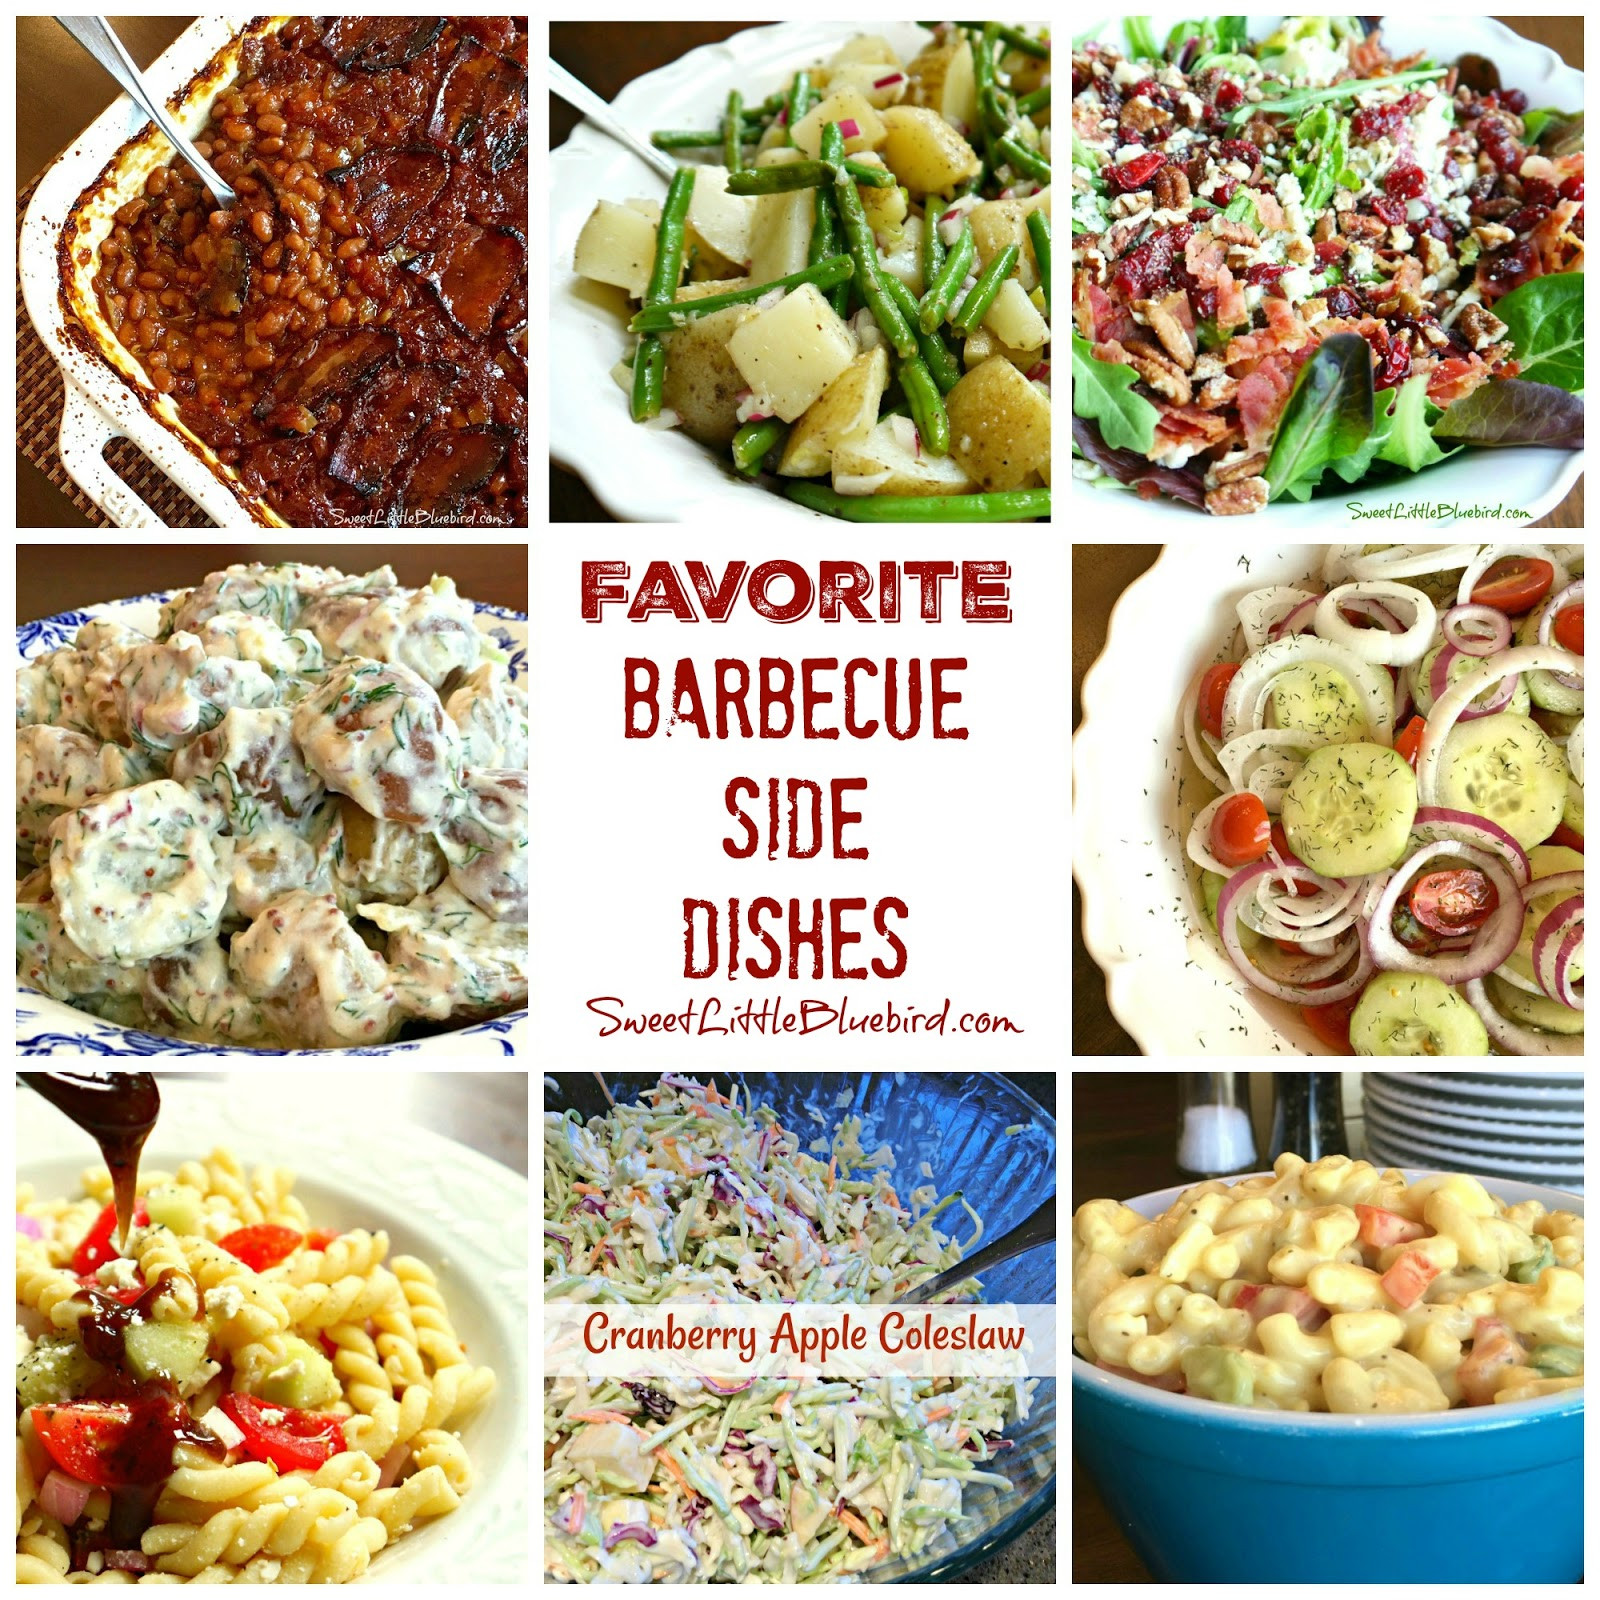 Barbecue Side Dishes  Favorite Barbecue Side Dishes Sweet Little Bluebird